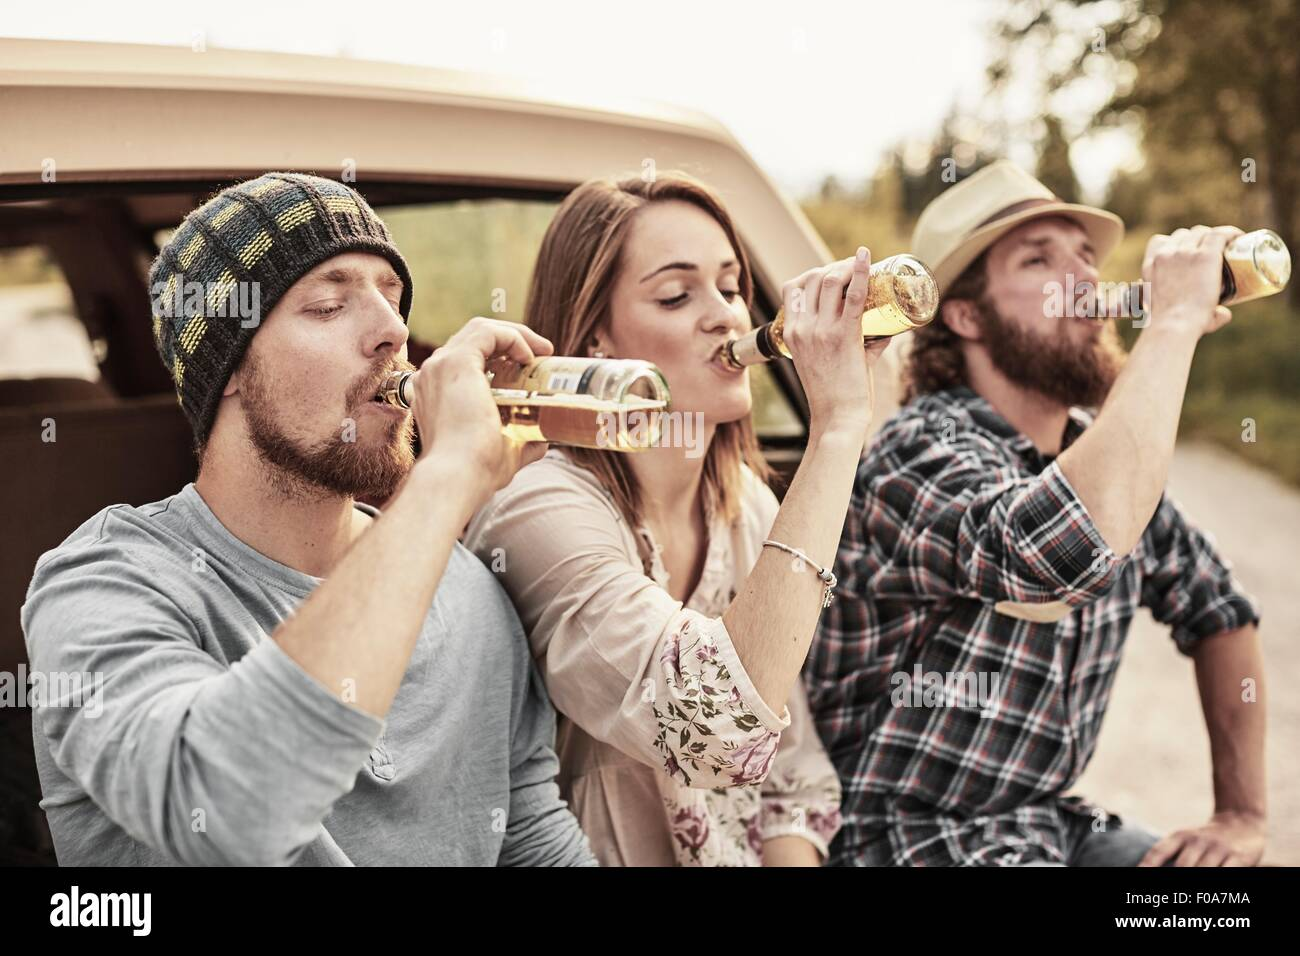 Three people drinking bottled beer in unison - Stock Image